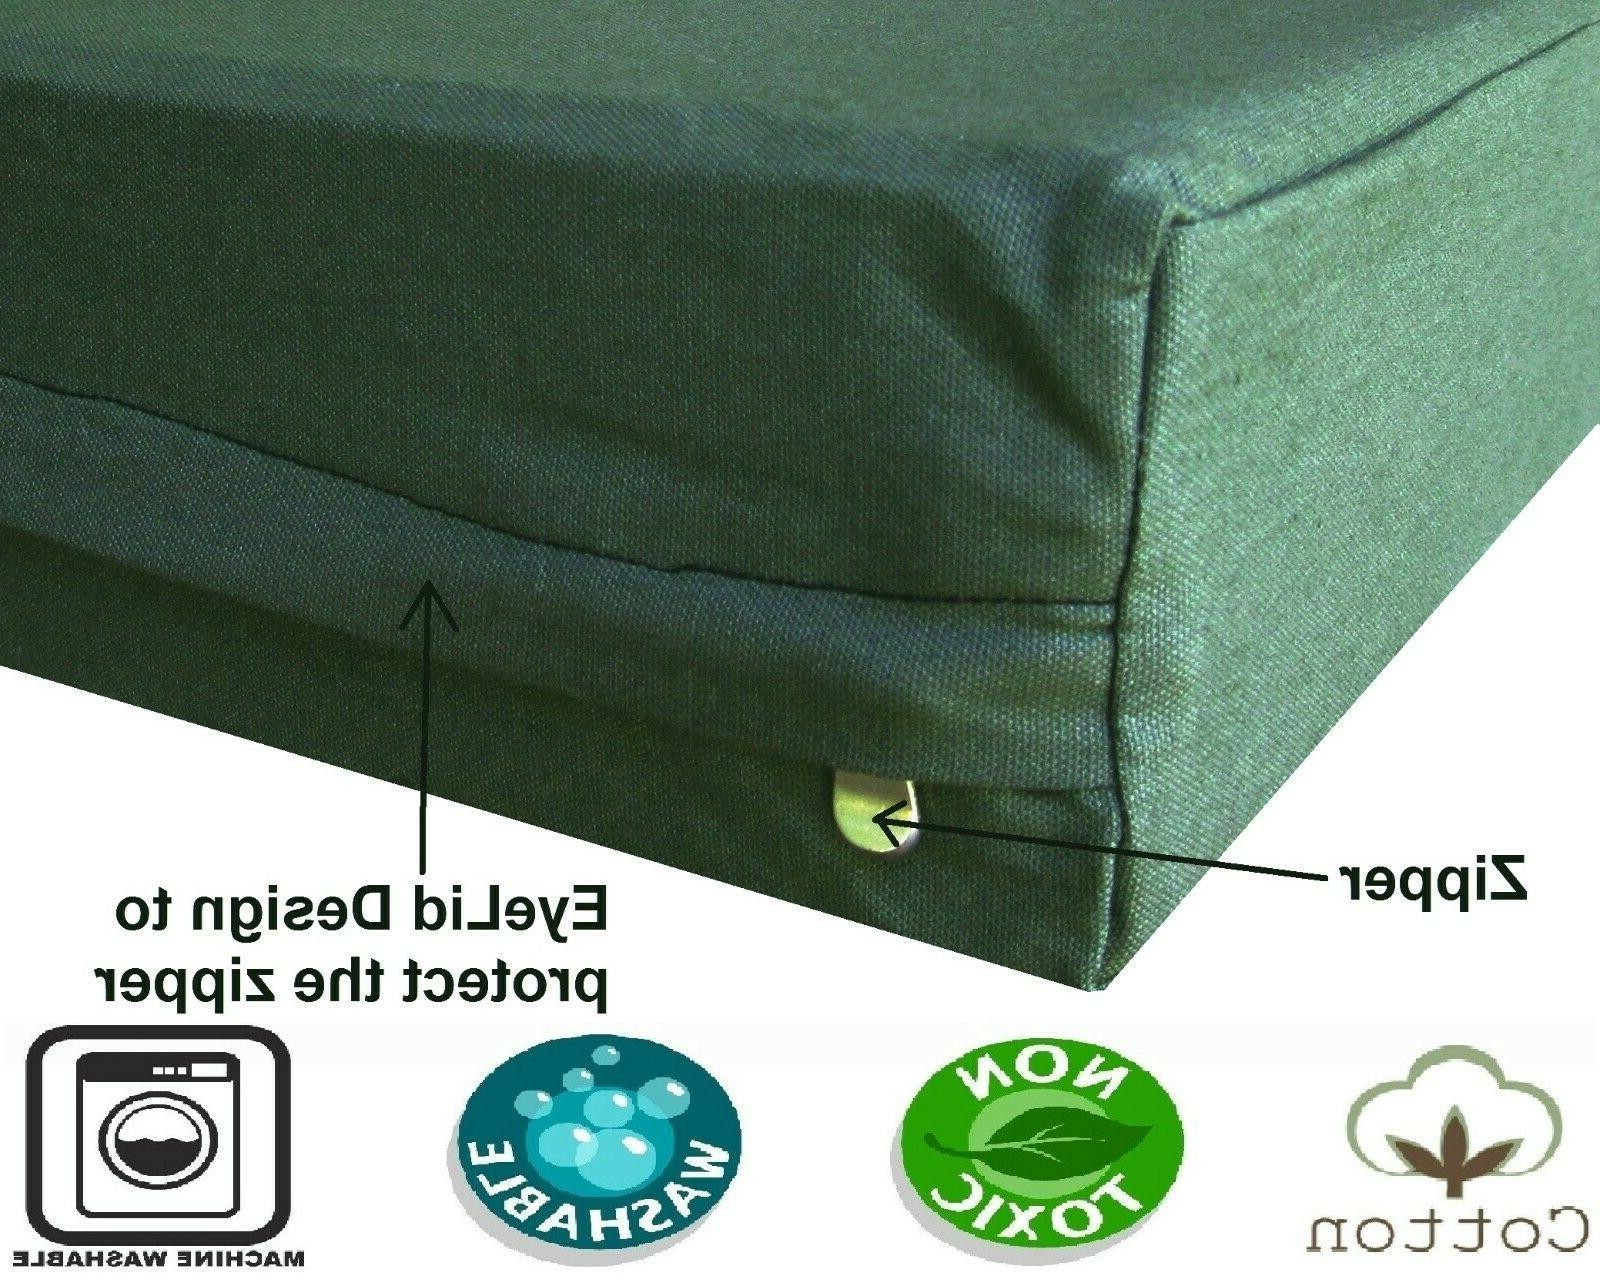 Dogbed4less XL Orthopedic Pet Dog Bed Crate